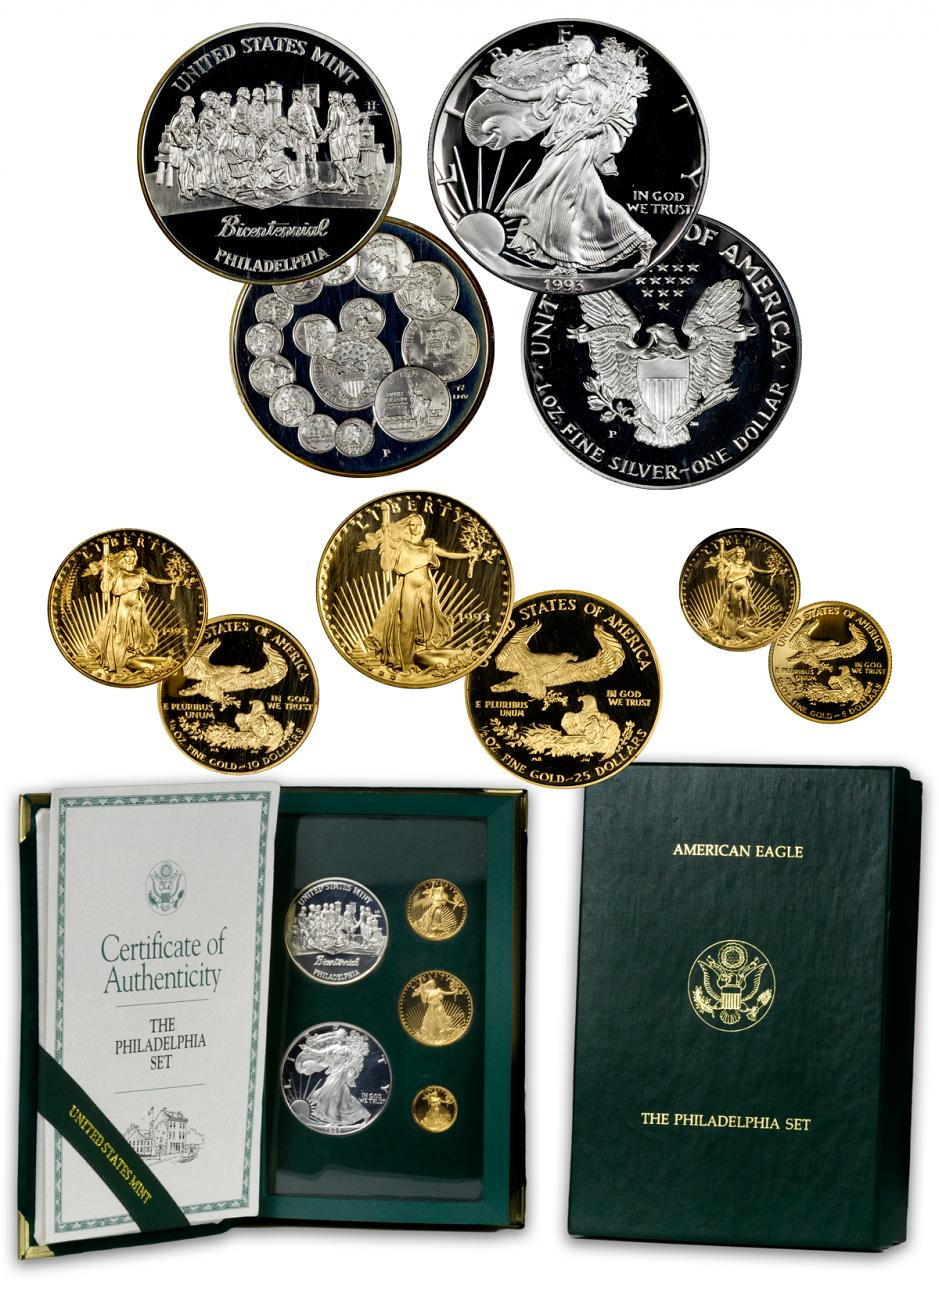 1993 Proof Gold & Silver Philadelphia Bicentennial - Set of 5 Coins - GEM Proof (Original Mint Packaging)